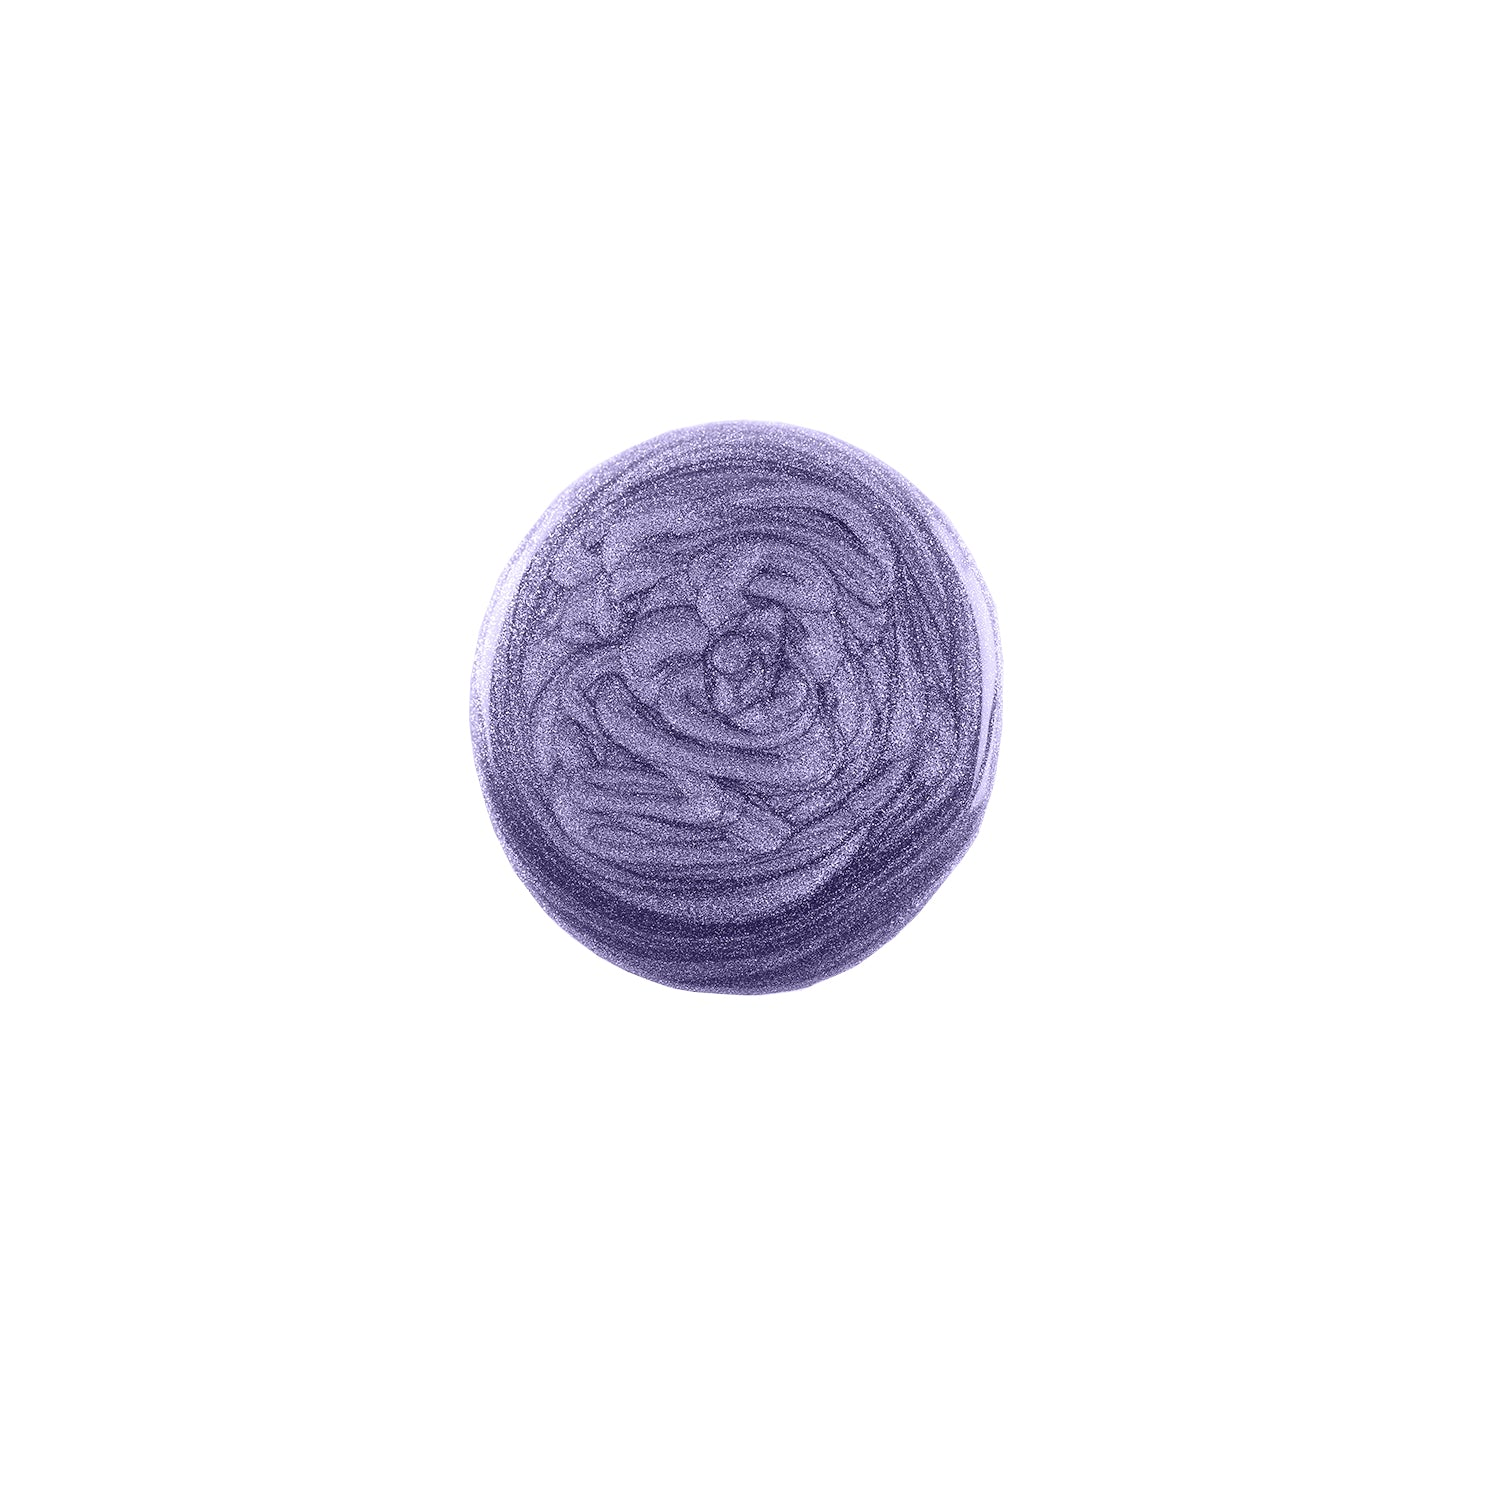 LITTMUSS Sugar Candy Nail Polish Grape Taffy -032